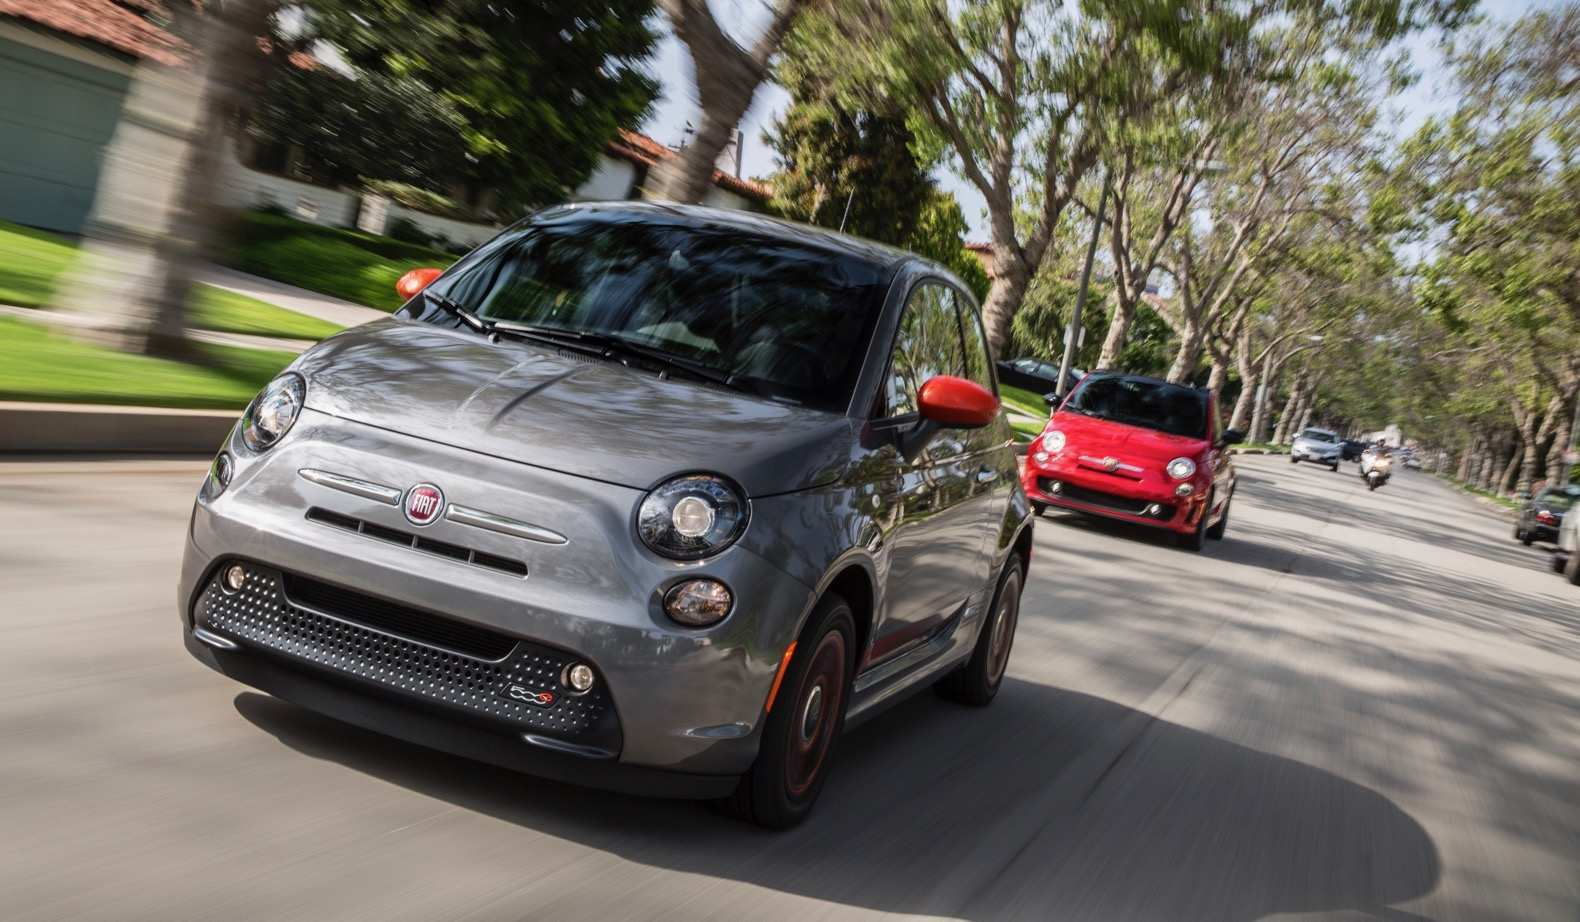 49 Concept of 2020 Fiat 500 Redesign and Concept with 2020 Fiat 500